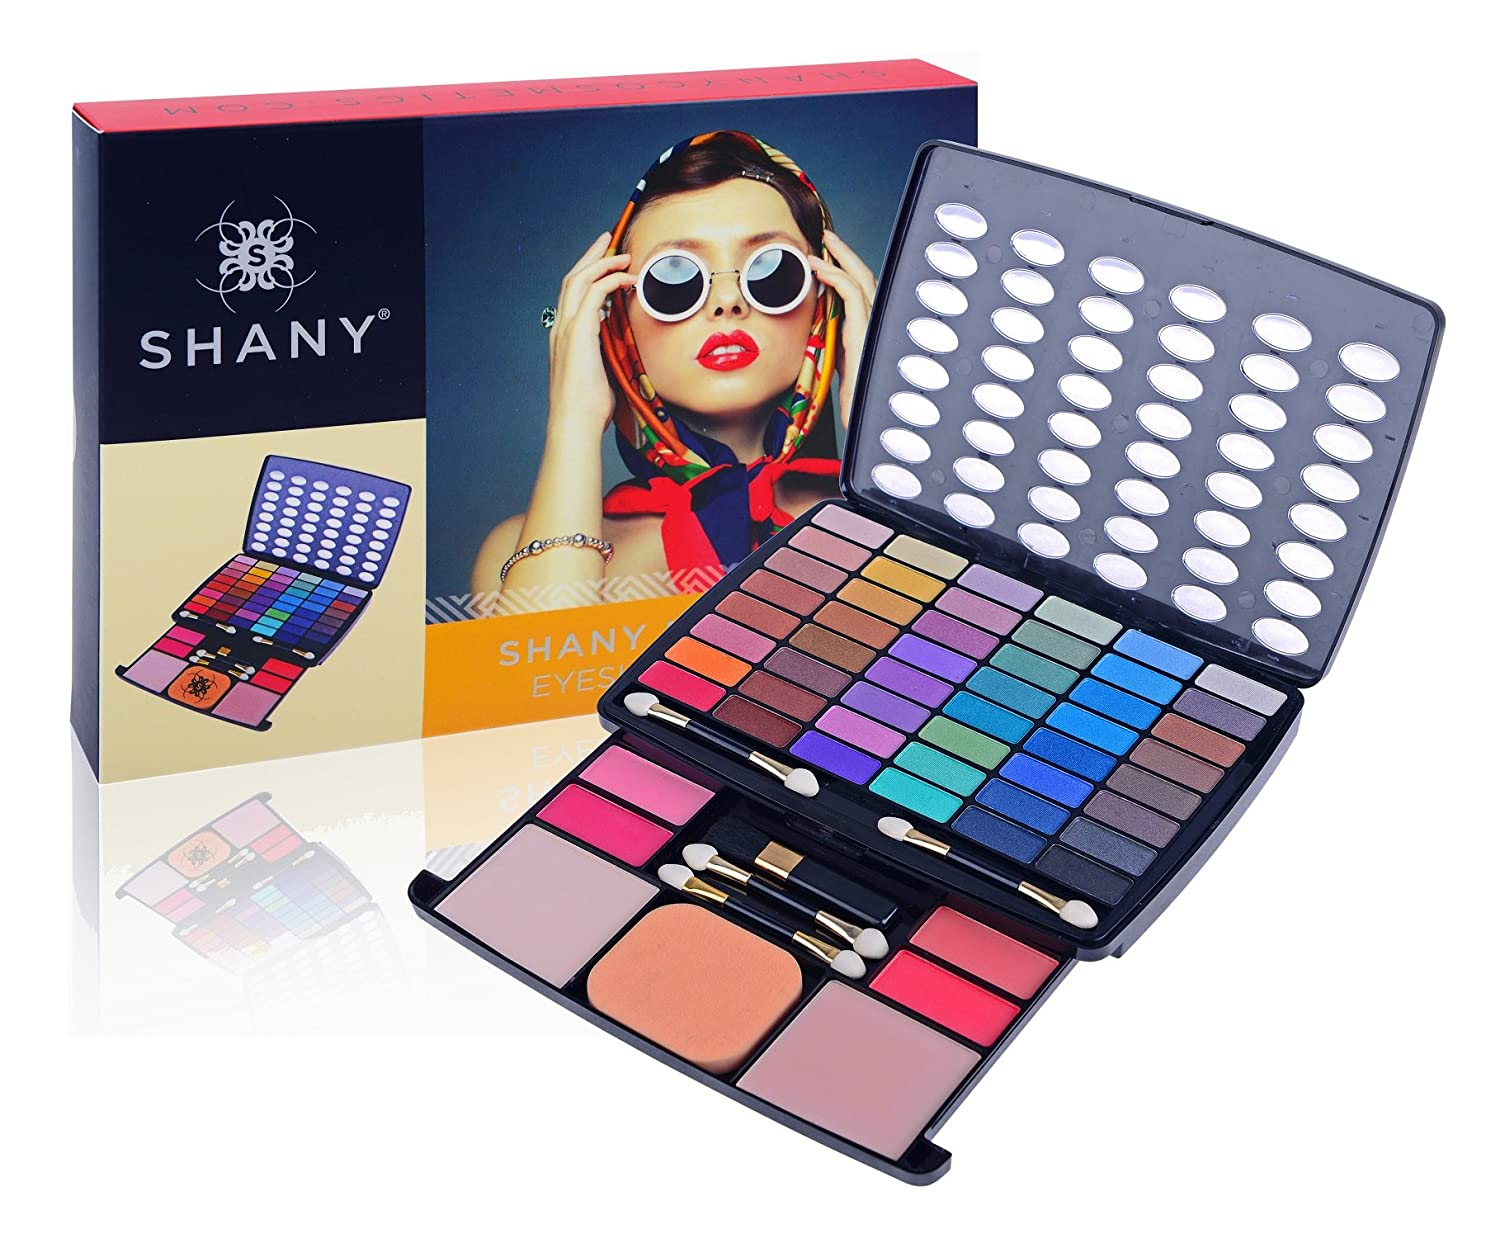 SHANY-Glamour-Girl-Makeup-Kit-48-Eyeshadow-4-Blush-2-Powder